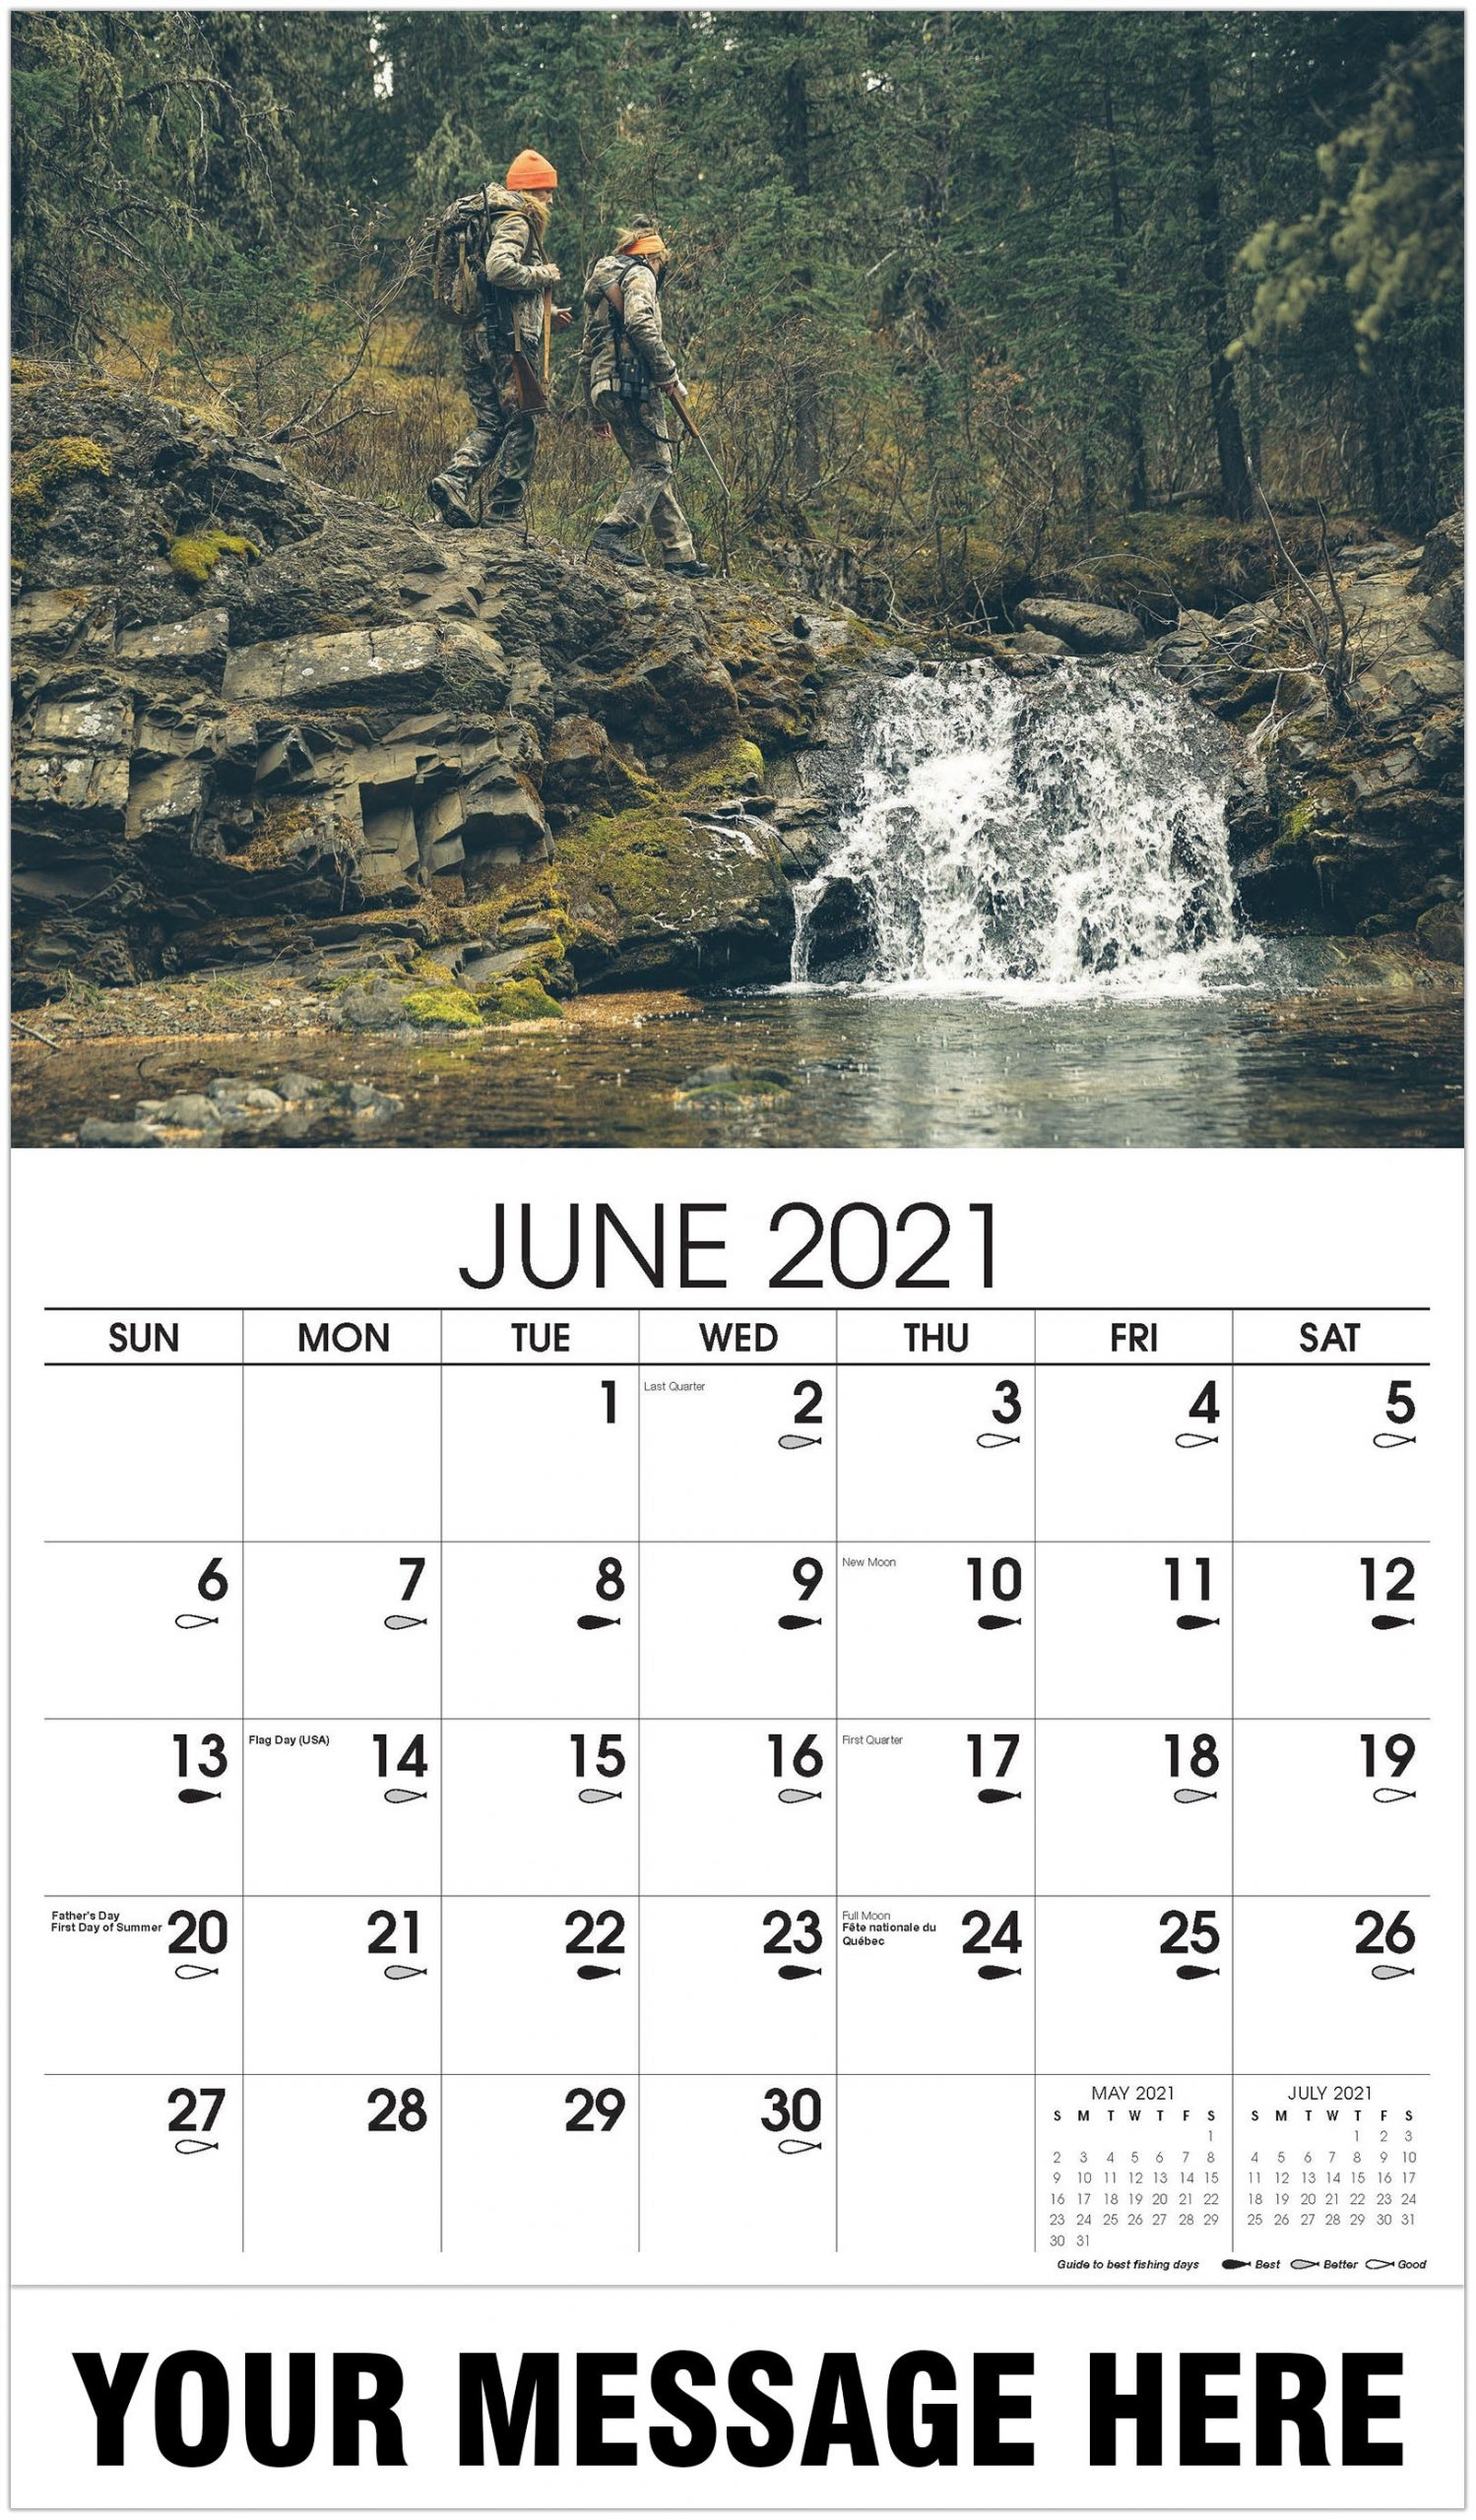 2021 Promotional Advertising Calendar | Fishing And Hunting-Indiana 2021 Deer Calender